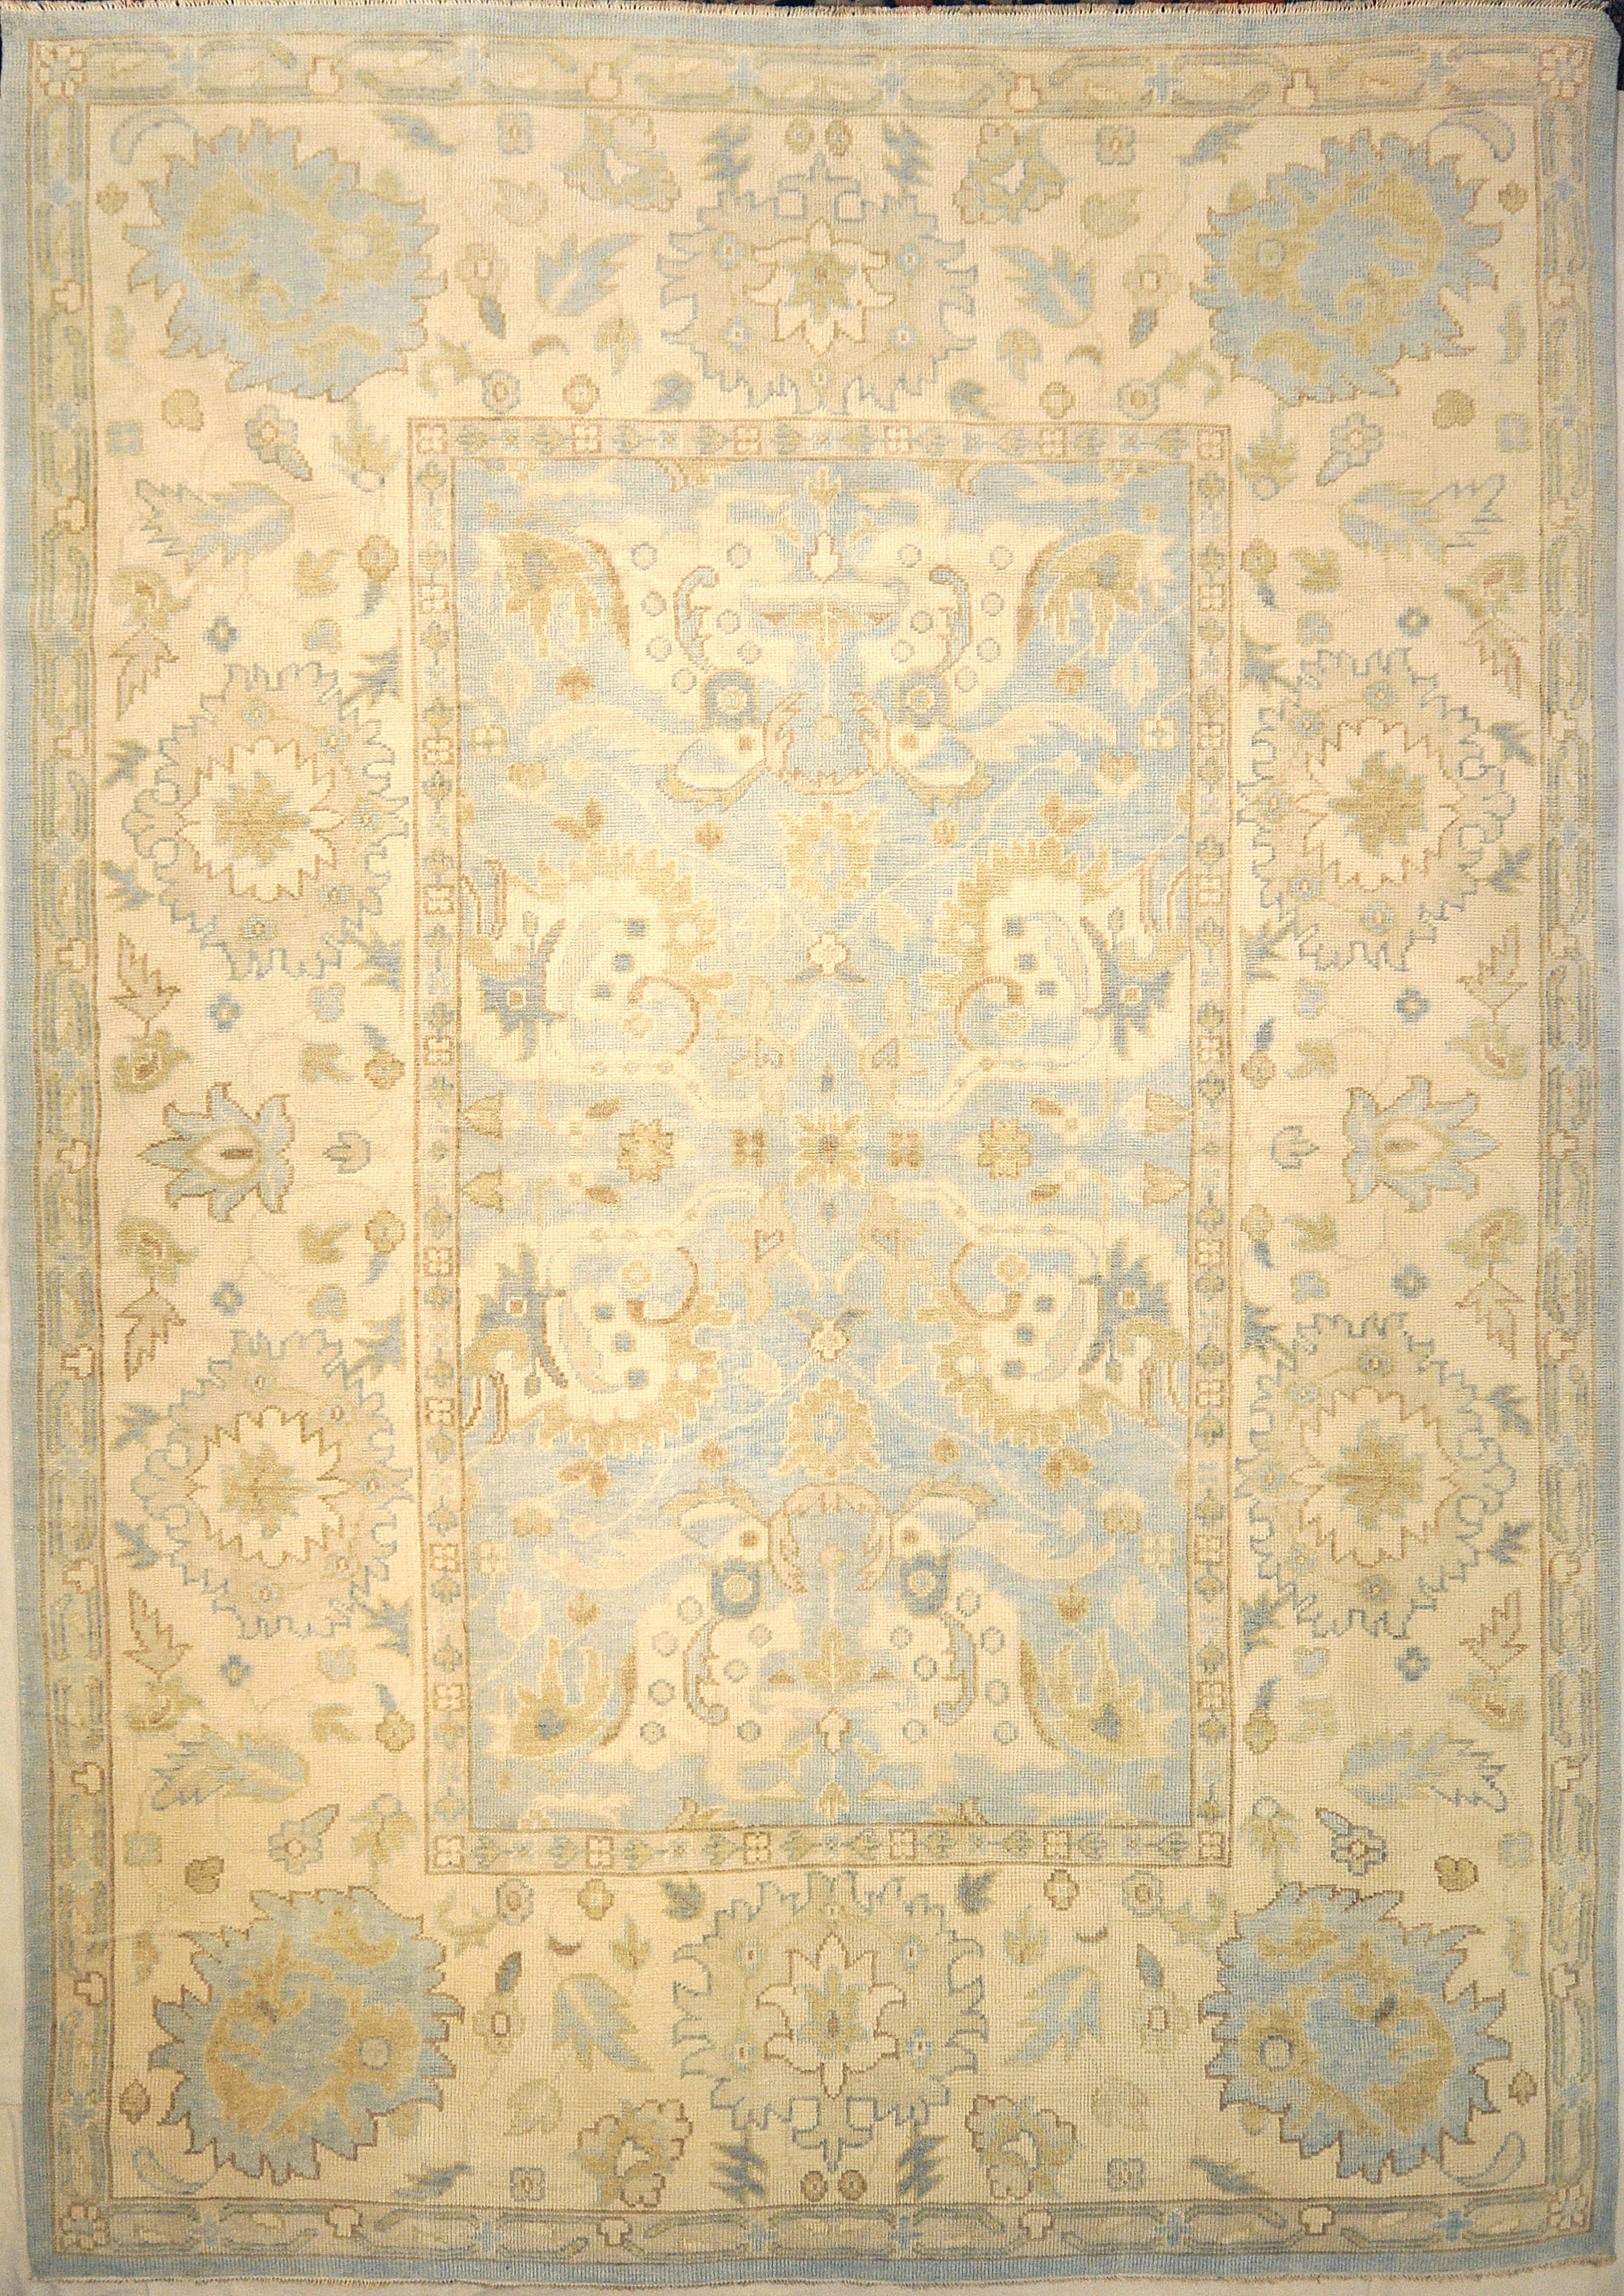 Montecito Oushak Rug 30313. A piece of genuine authentic woven art woven by Ziegler and Company and sold by Santa Barbara Design Center, Rugs and More.